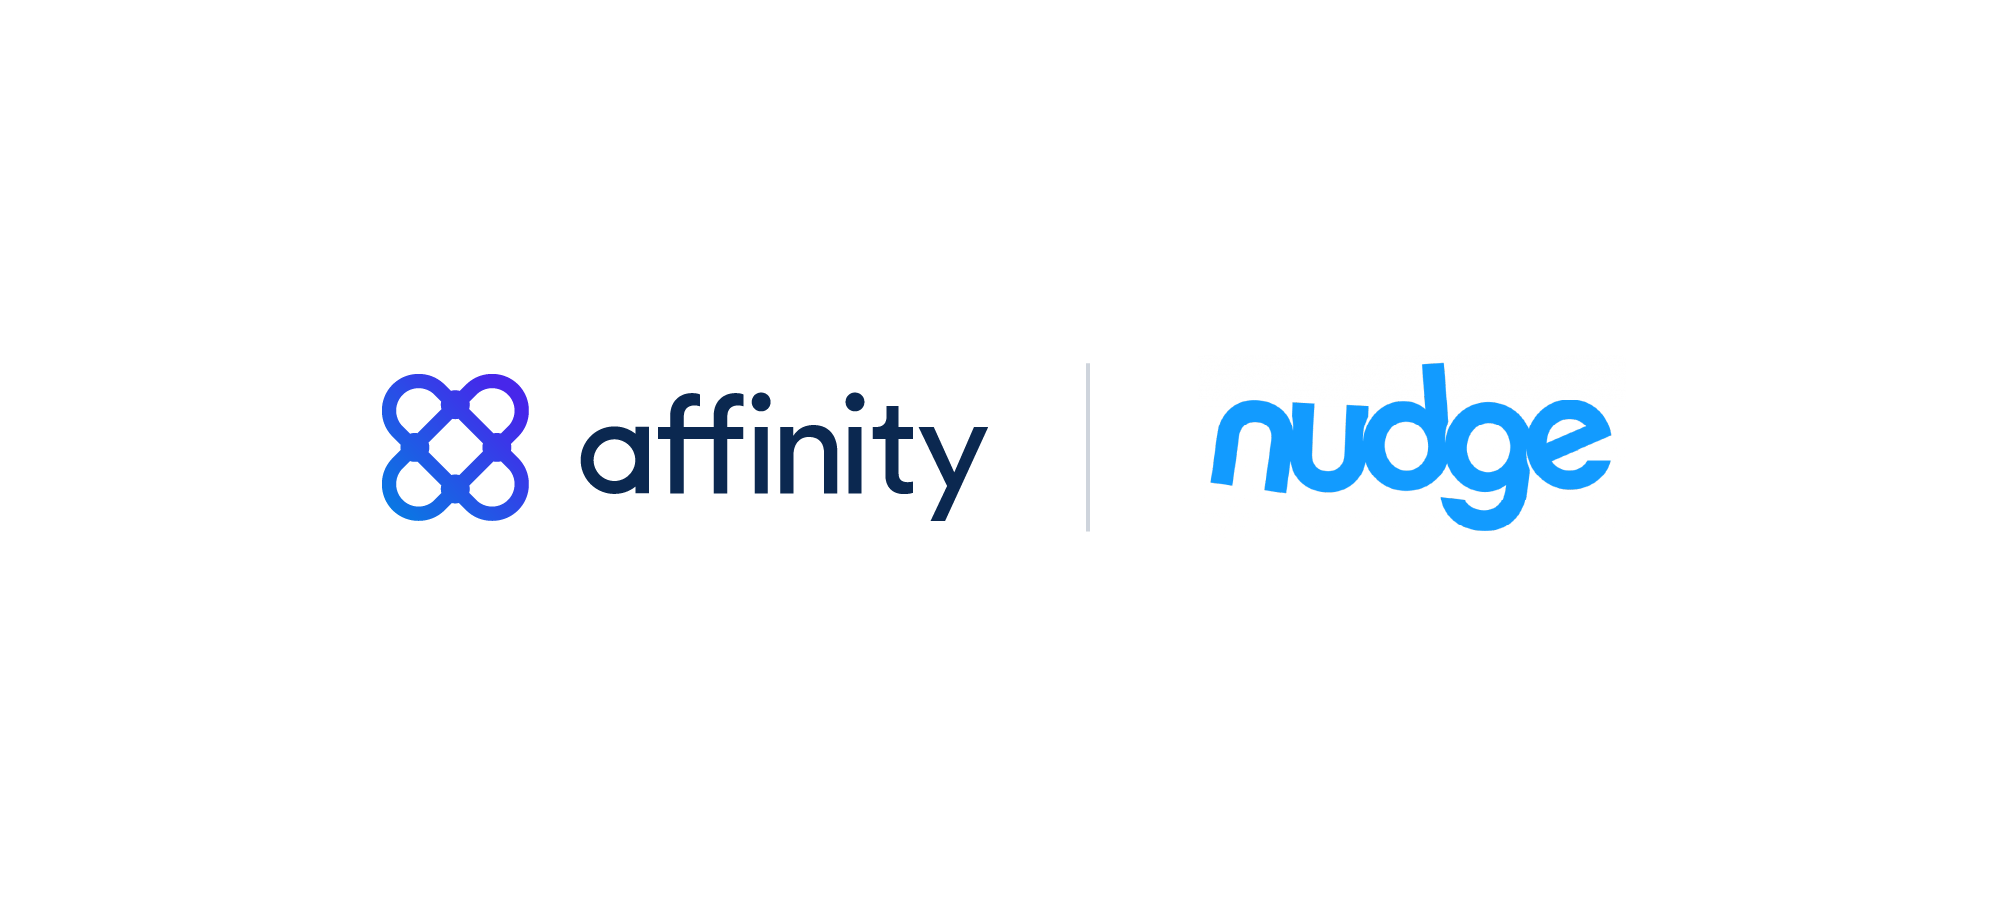 Press Release: Affinity Acquires Nudge.ai to Boost Relationship Intelligence for Sales Teams